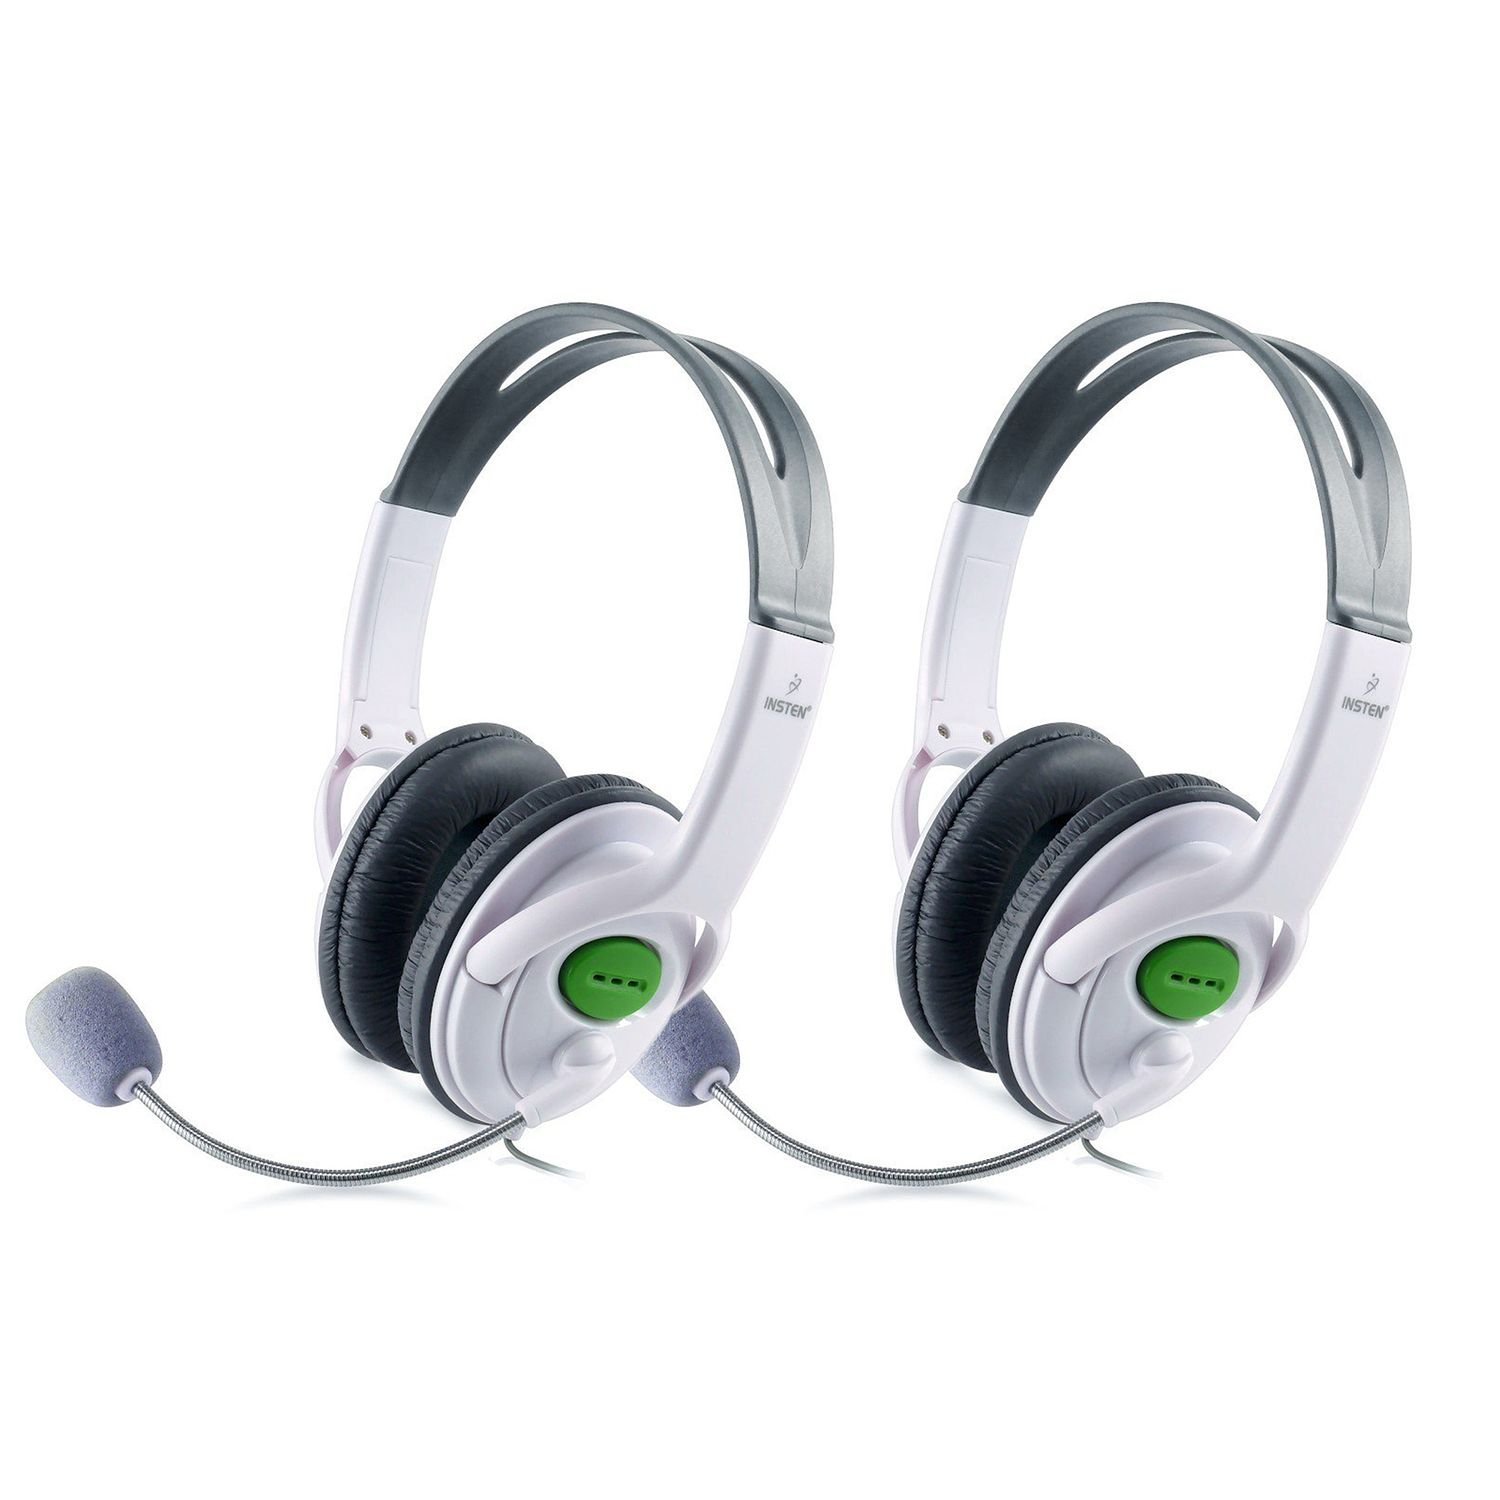 Insten [2 Pack] Gaming Headset Chat Headphone with Mic Microphone for Xbox 360 Live Wireless Controller, White by INSTEN